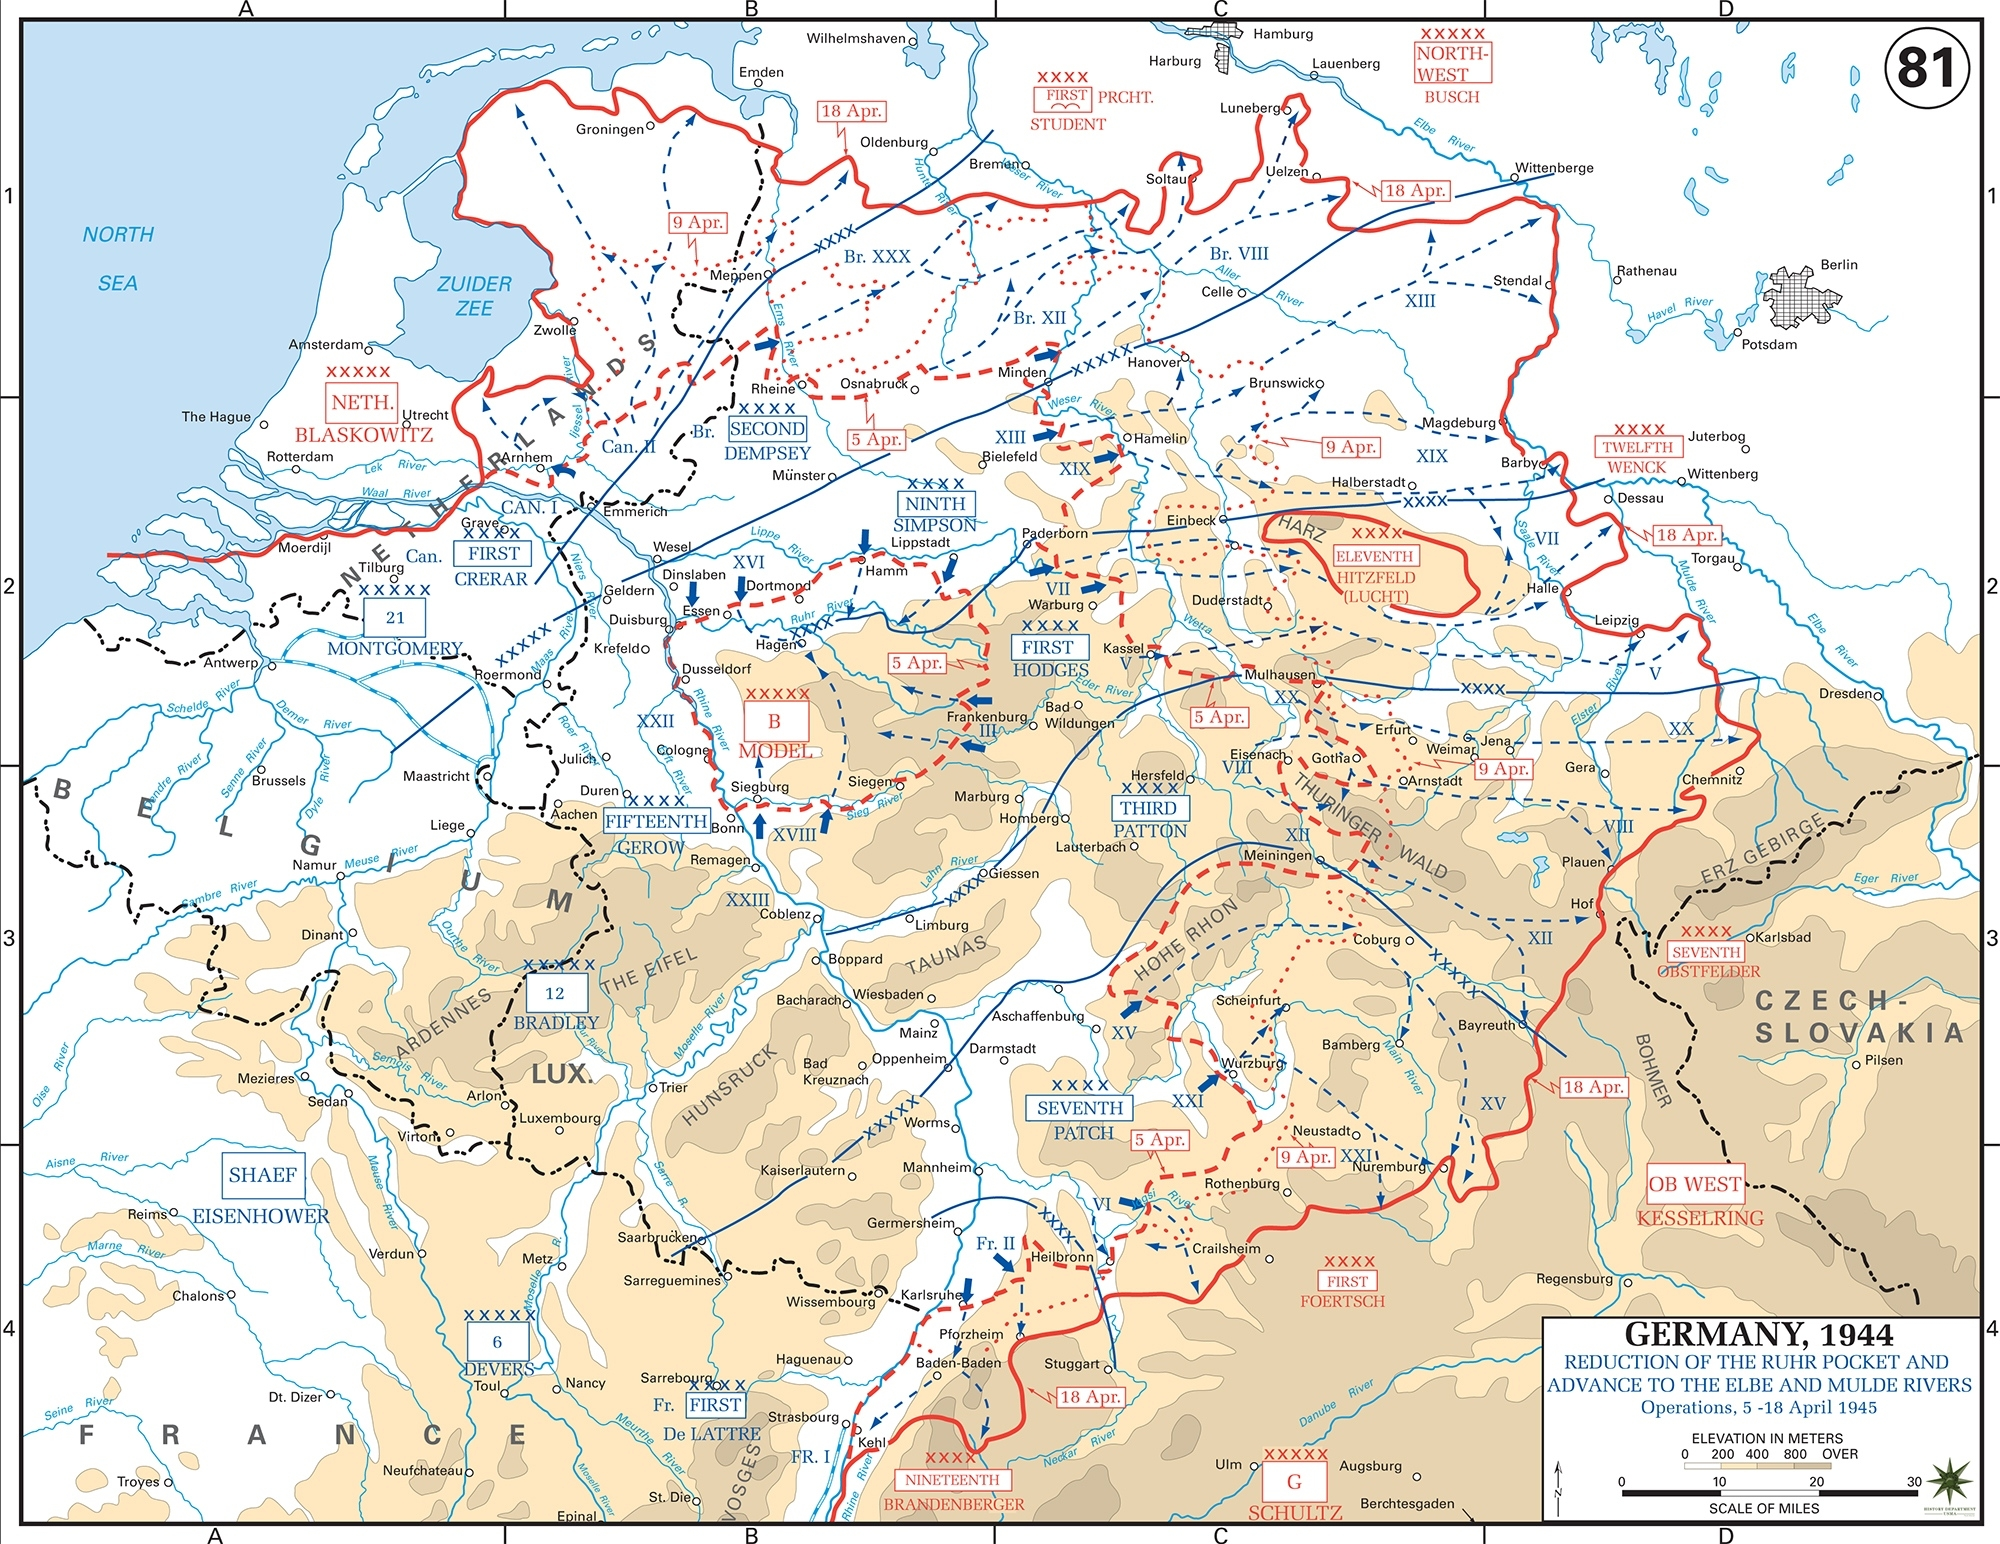 Map Of Wwii: Germany April 1945 throughout Map Of Germany World War Ii